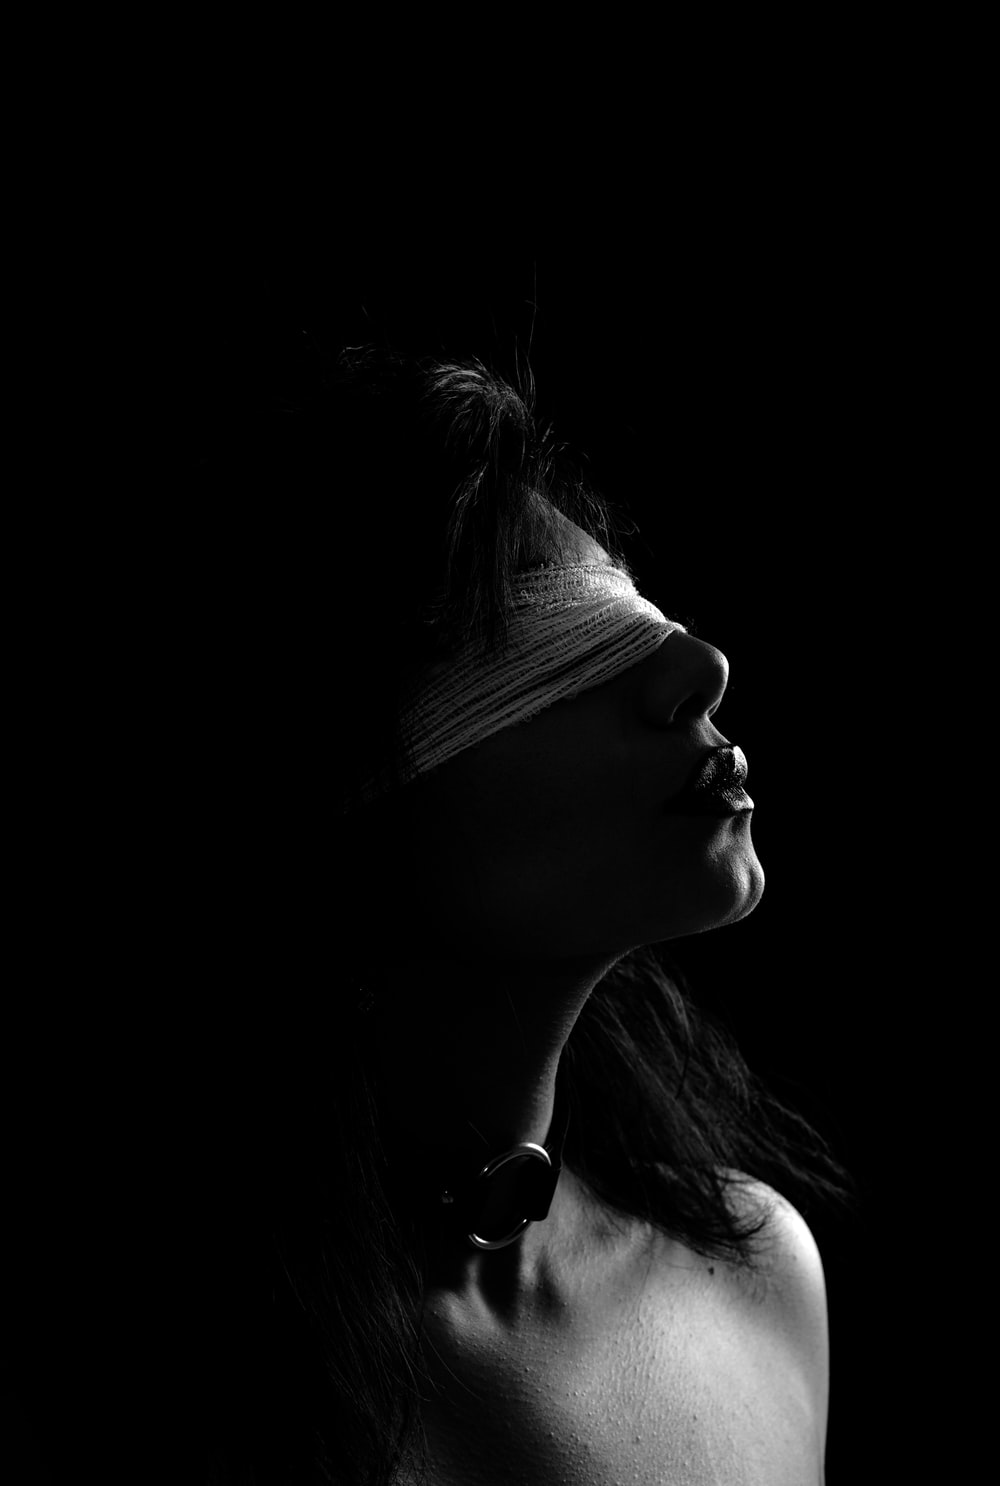 grayscale photography of woman wearing blindfold